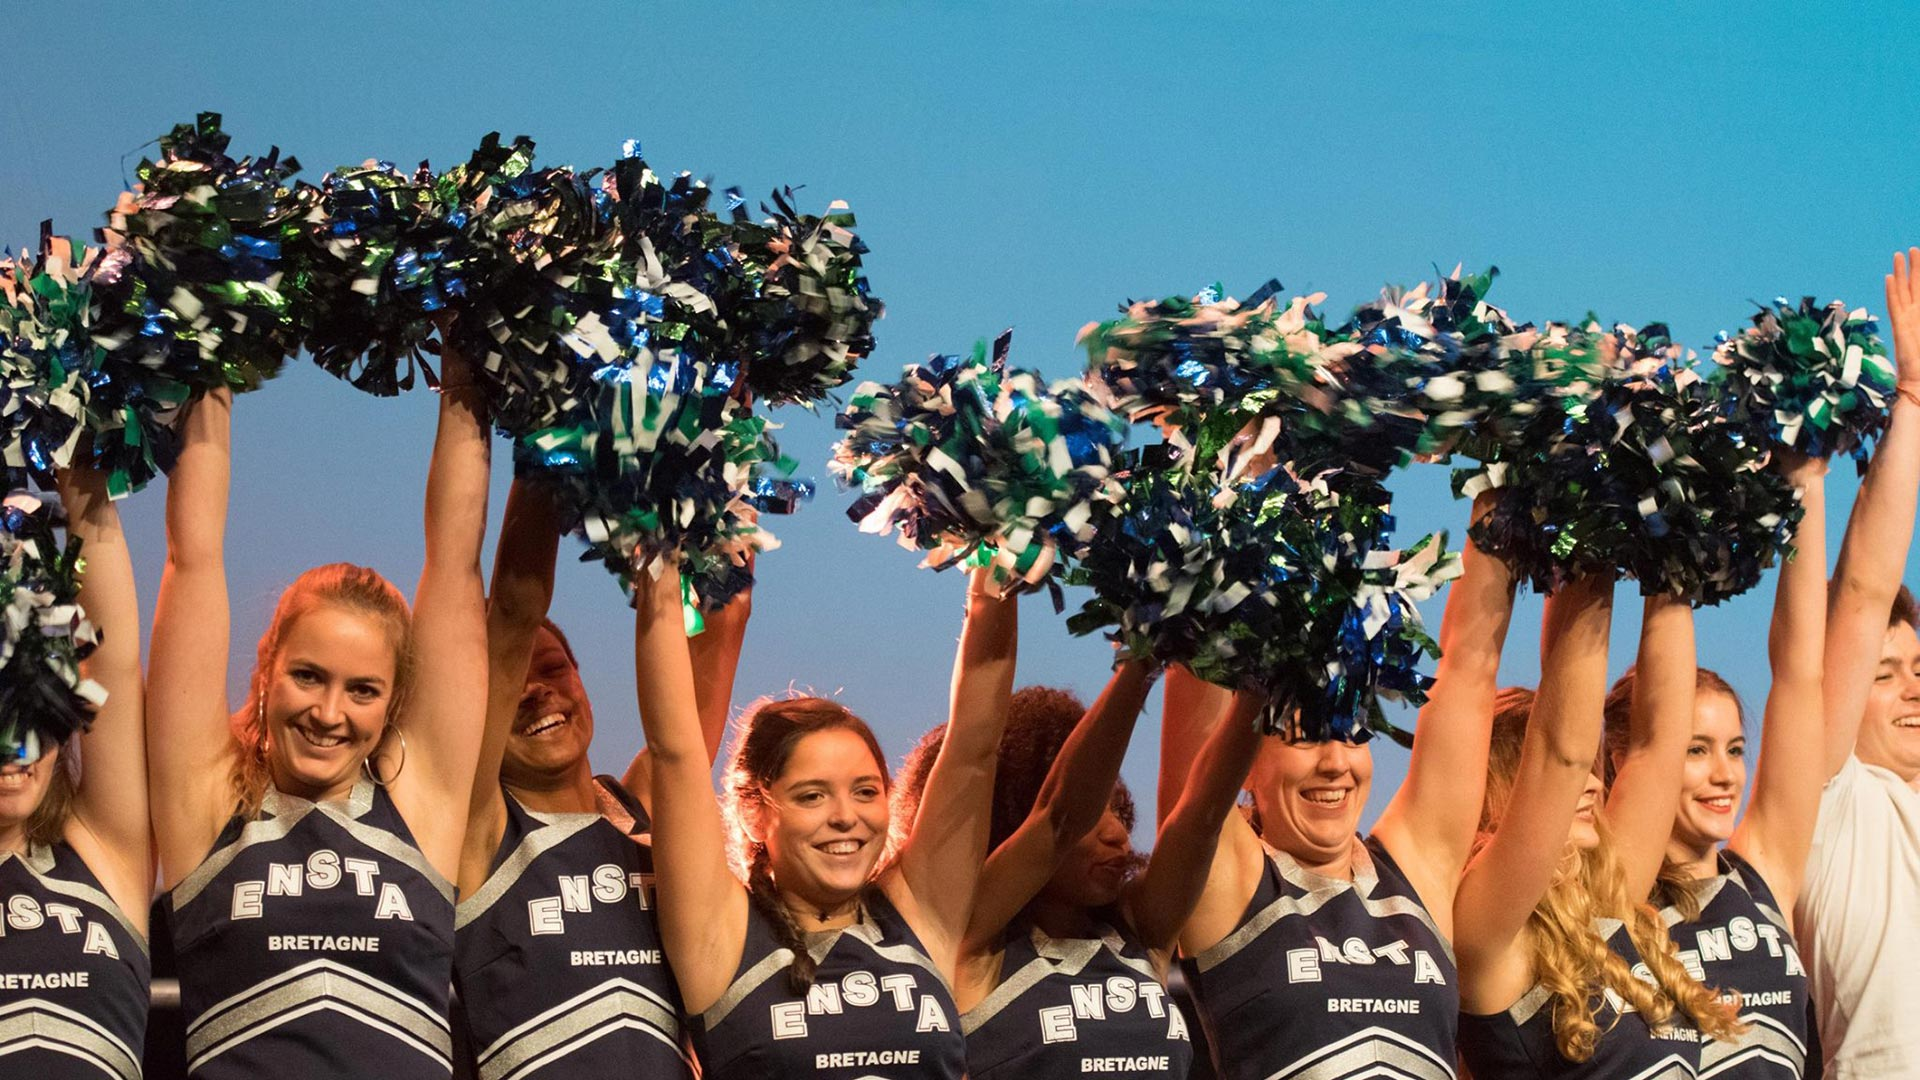 ENSTA Bretagne : pom pom girls - cheerleaders